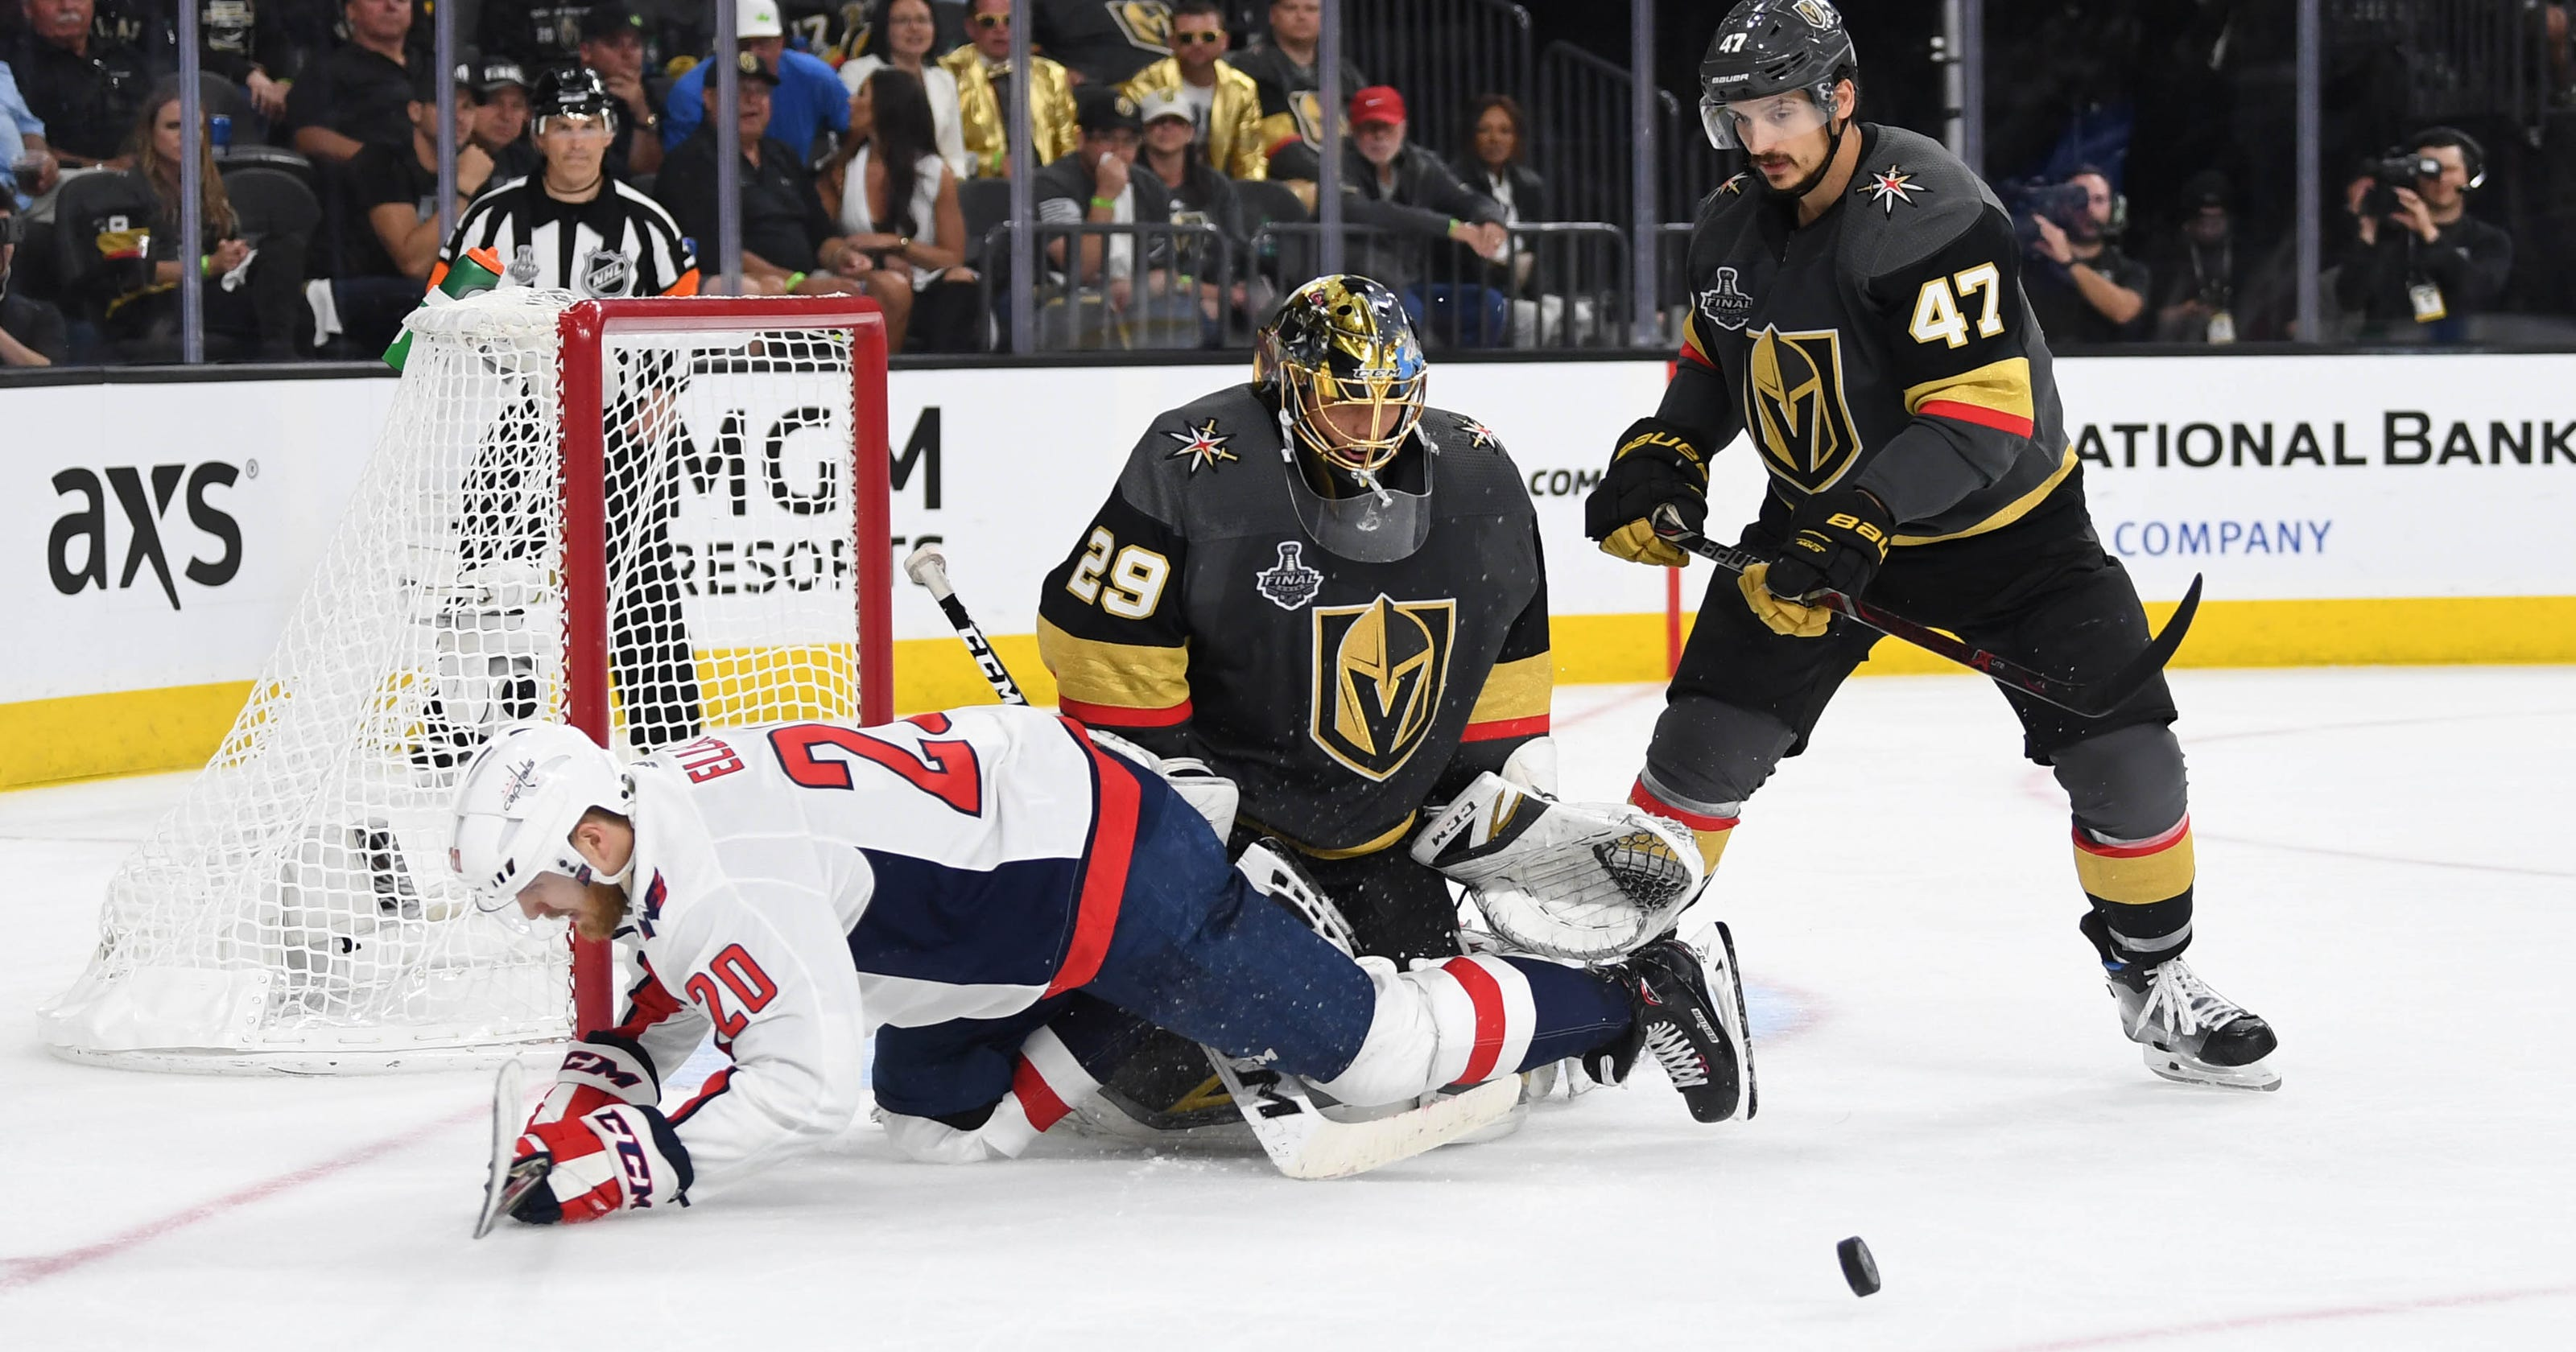 894340dff0d Vegas Golden Knights look to regain momentum vs. Capitals to avoid becoming  a footnote